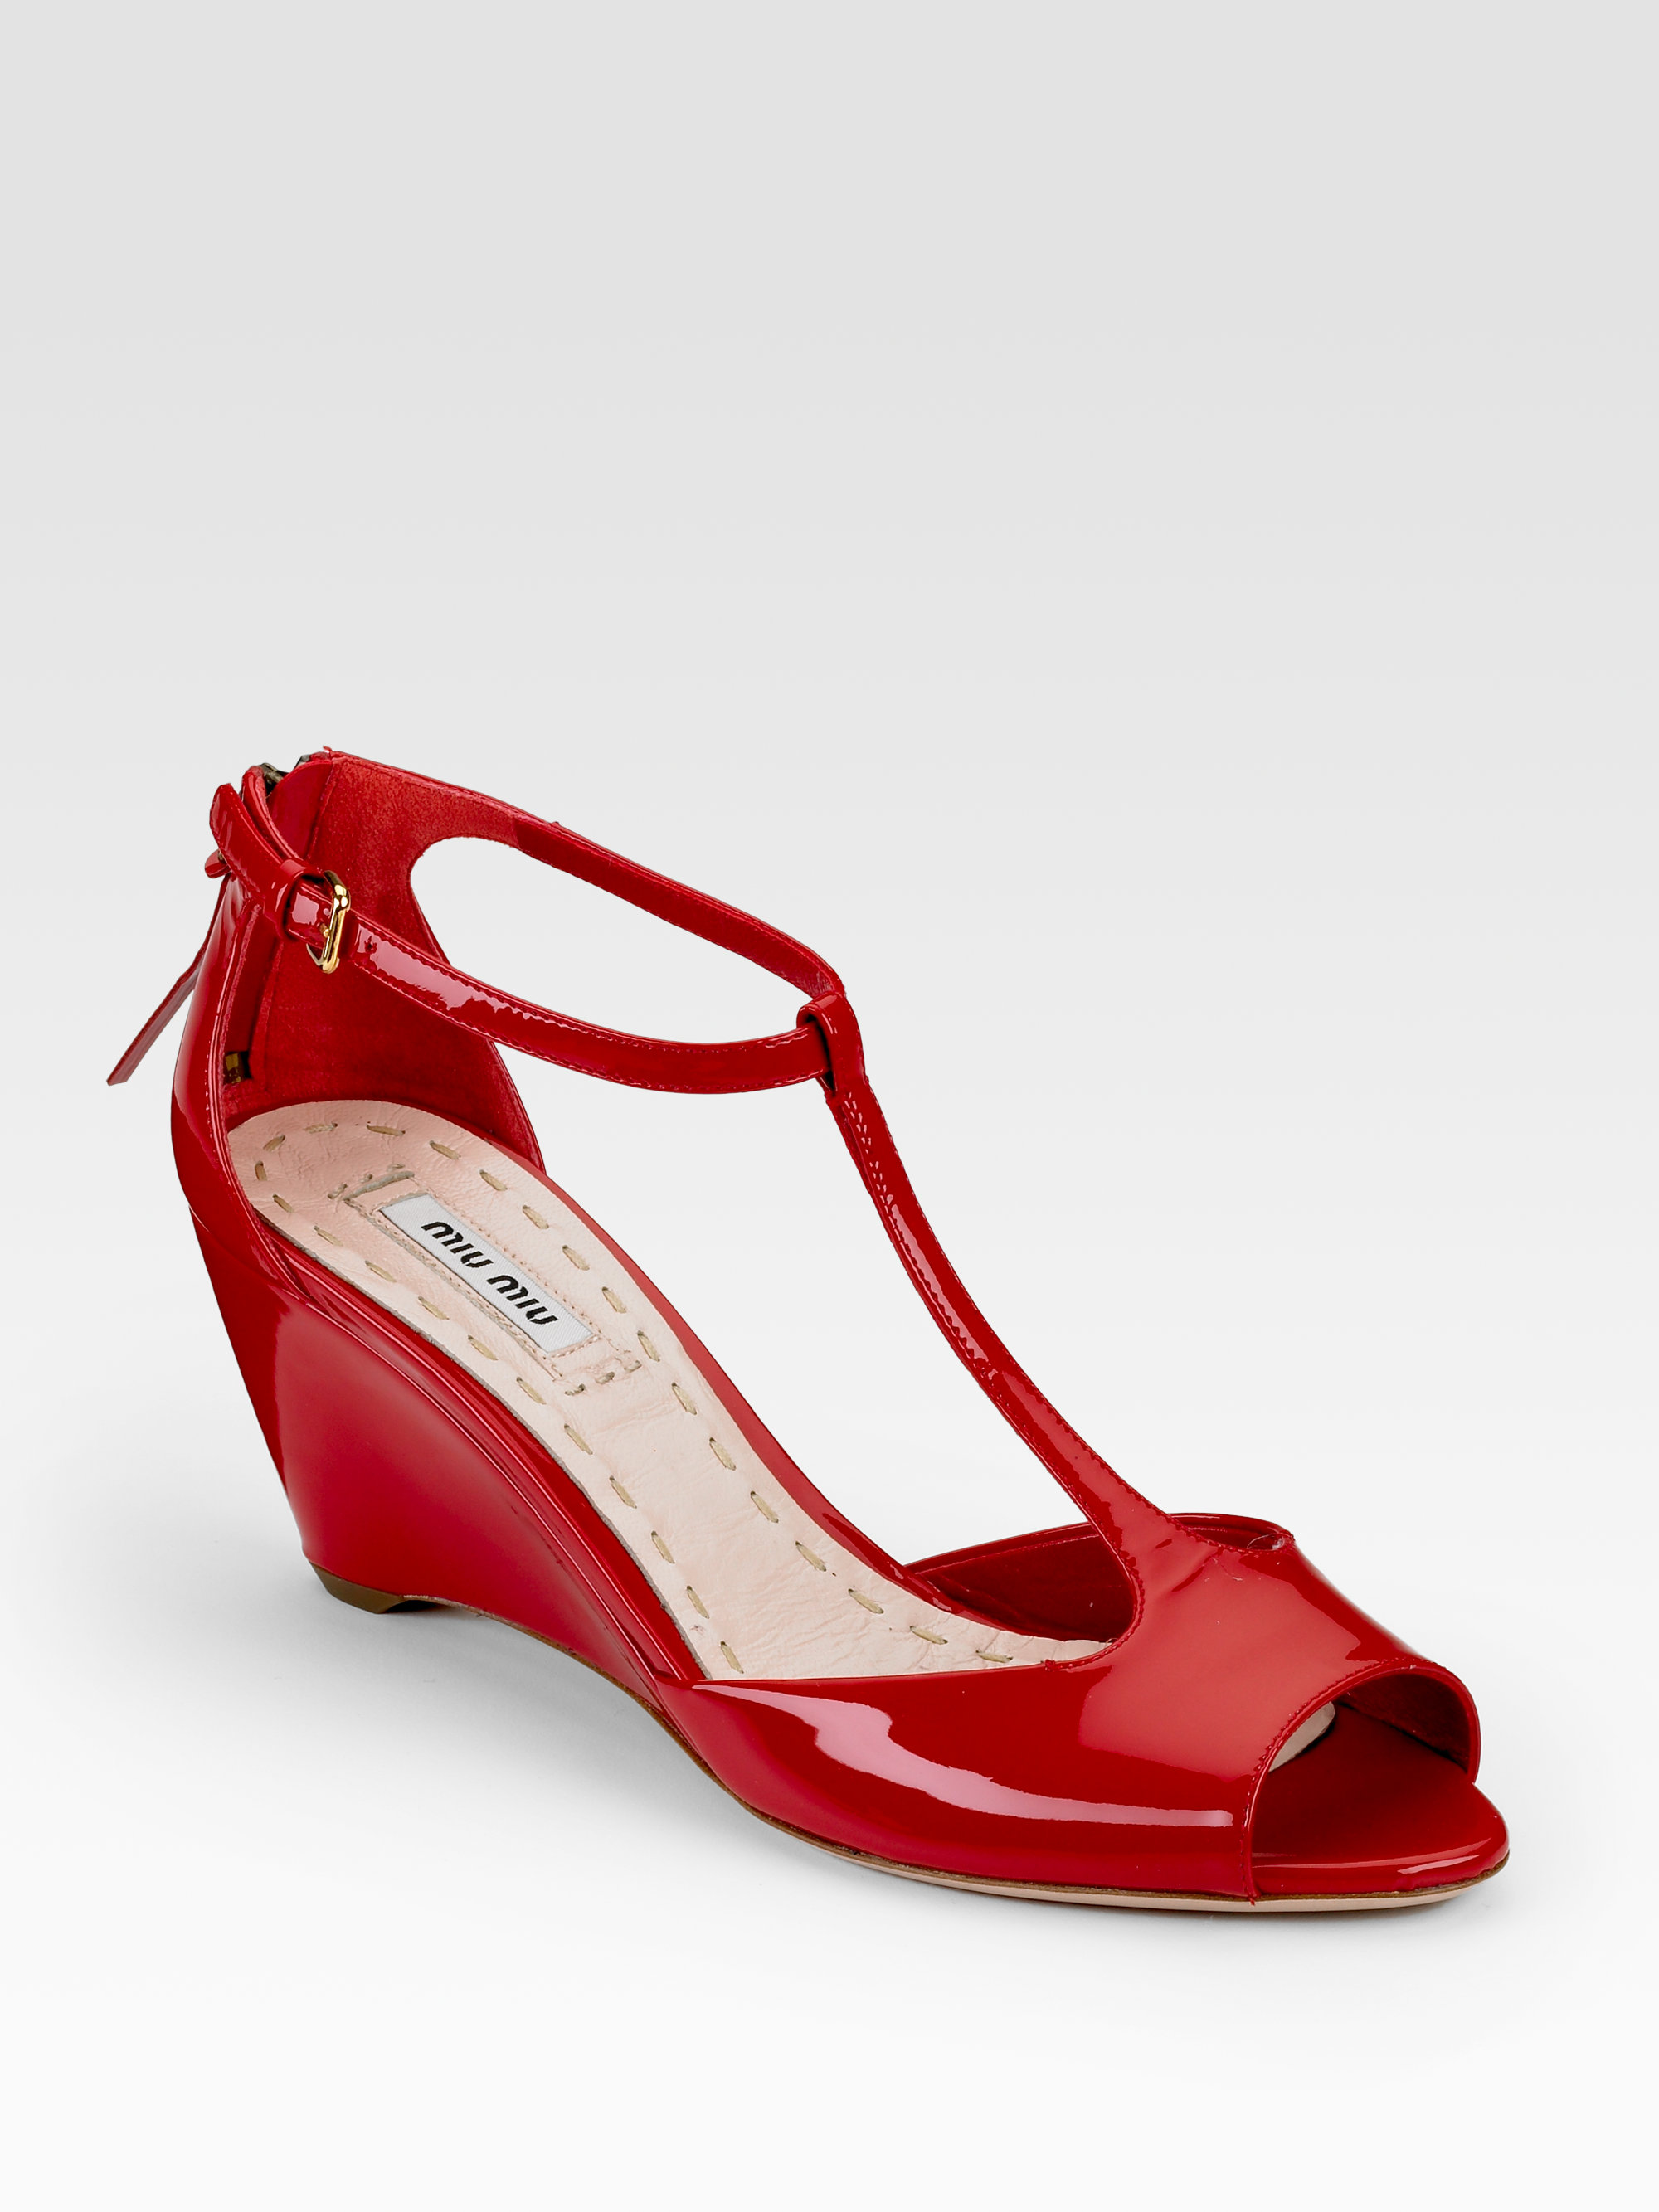 Red Patent Leather Wedges with FREE Shipping & Exchanges, and a % price guarantee. Choose from a huge selection of Red Patent Leather Wedges styles.